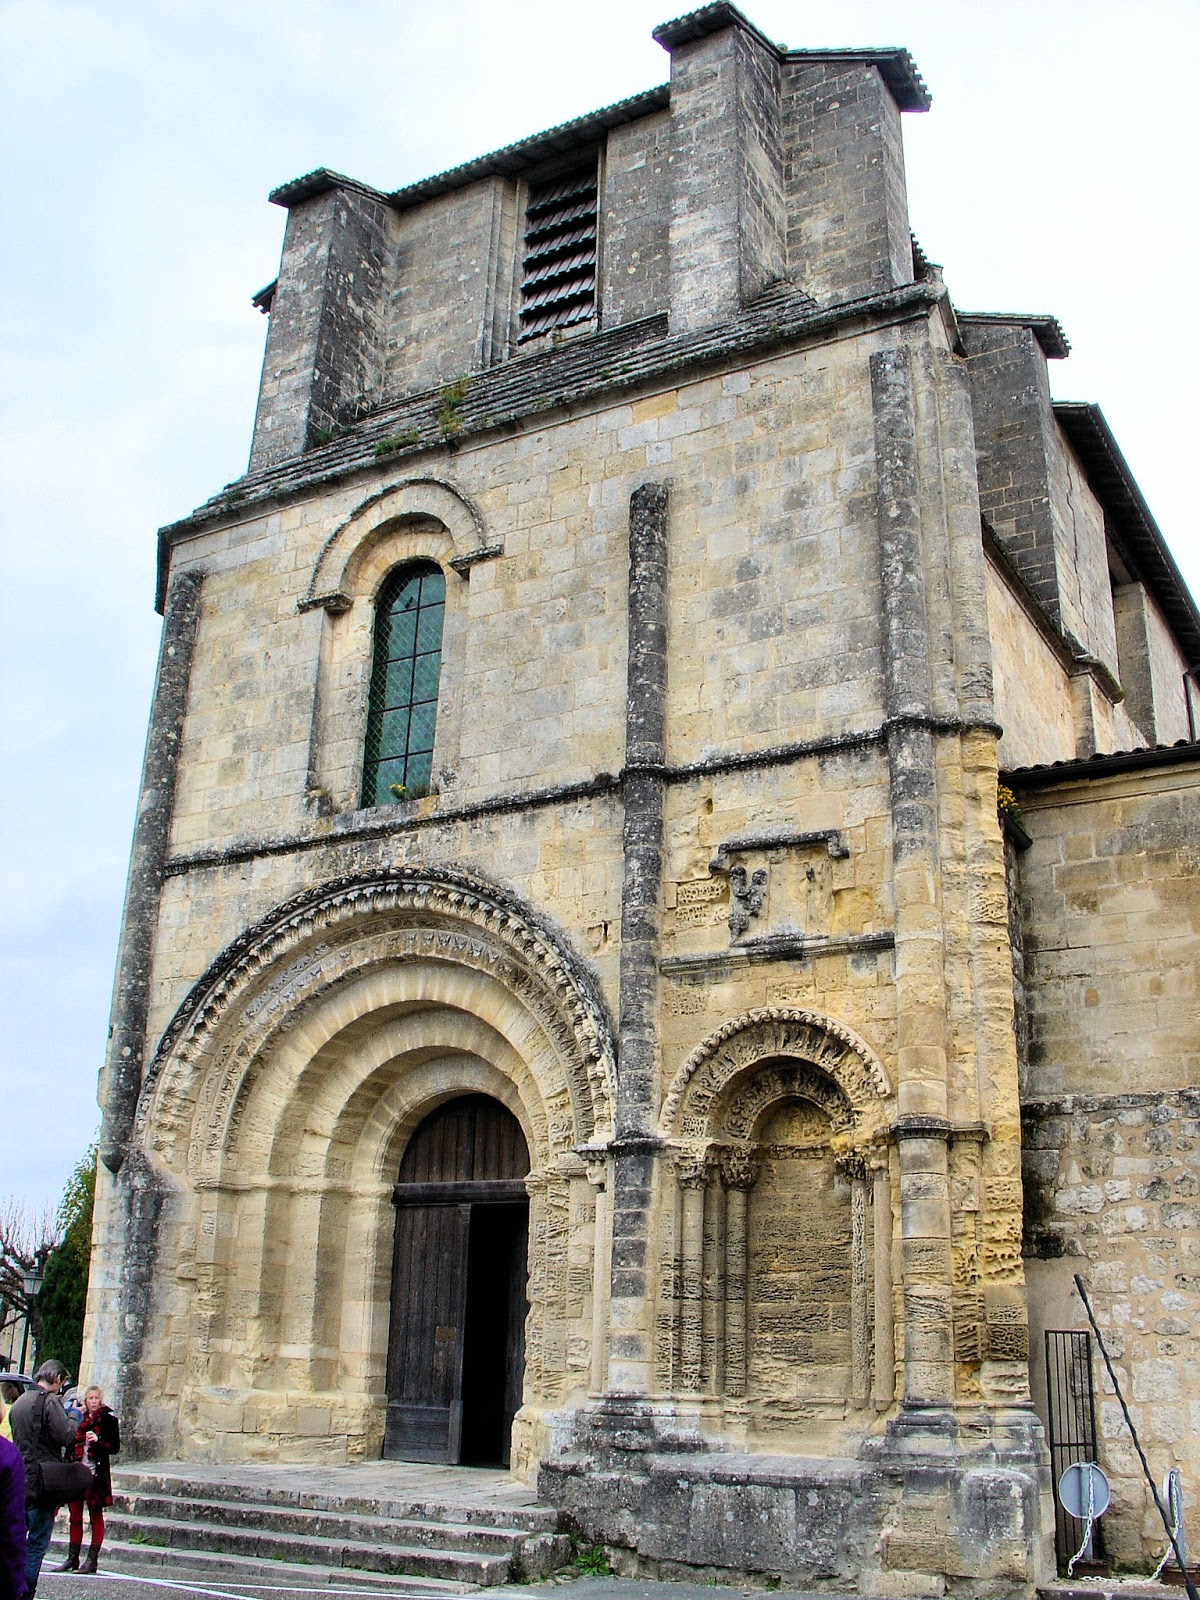 Western portal of the 14th-century Collegiate Church in Saint-Emilion.